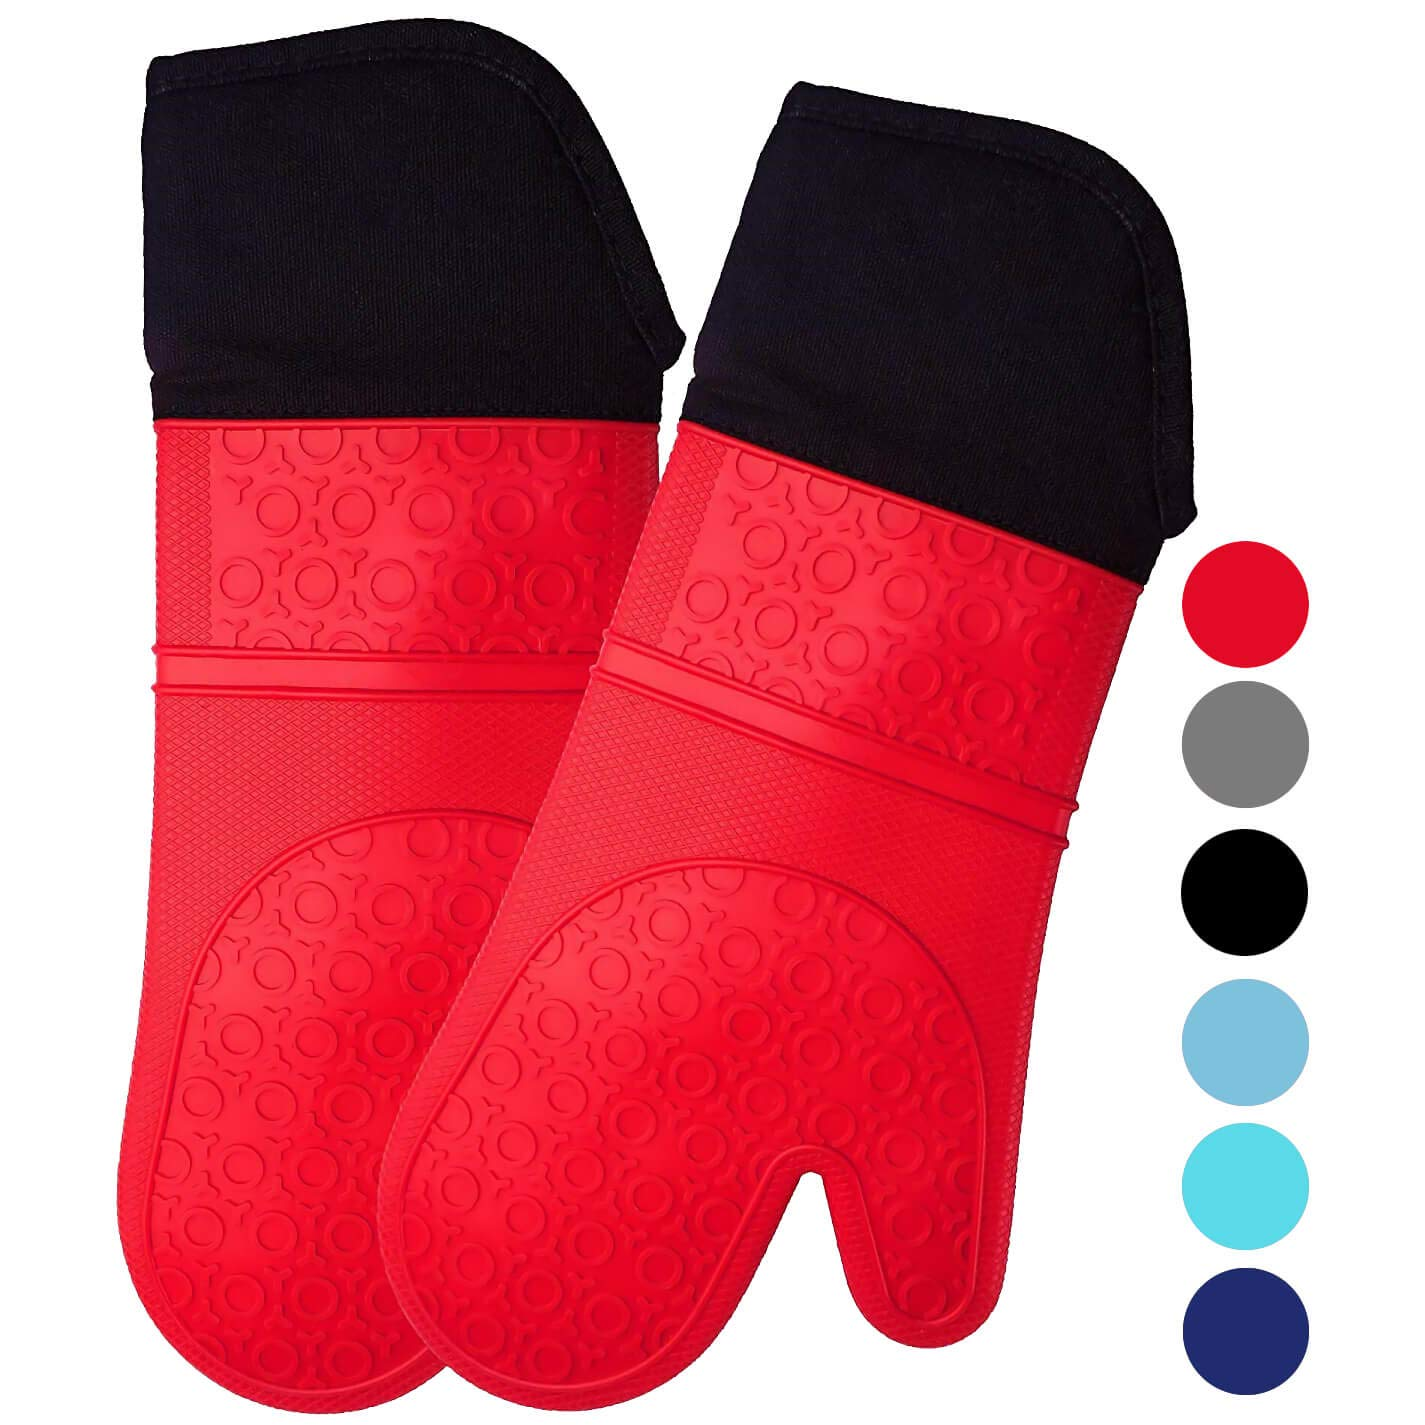 Homwe Extra Long Professional Silicone Oven Mitt - 1 Pair - Extra Long Oven Mitts with Quilted Liner - Red